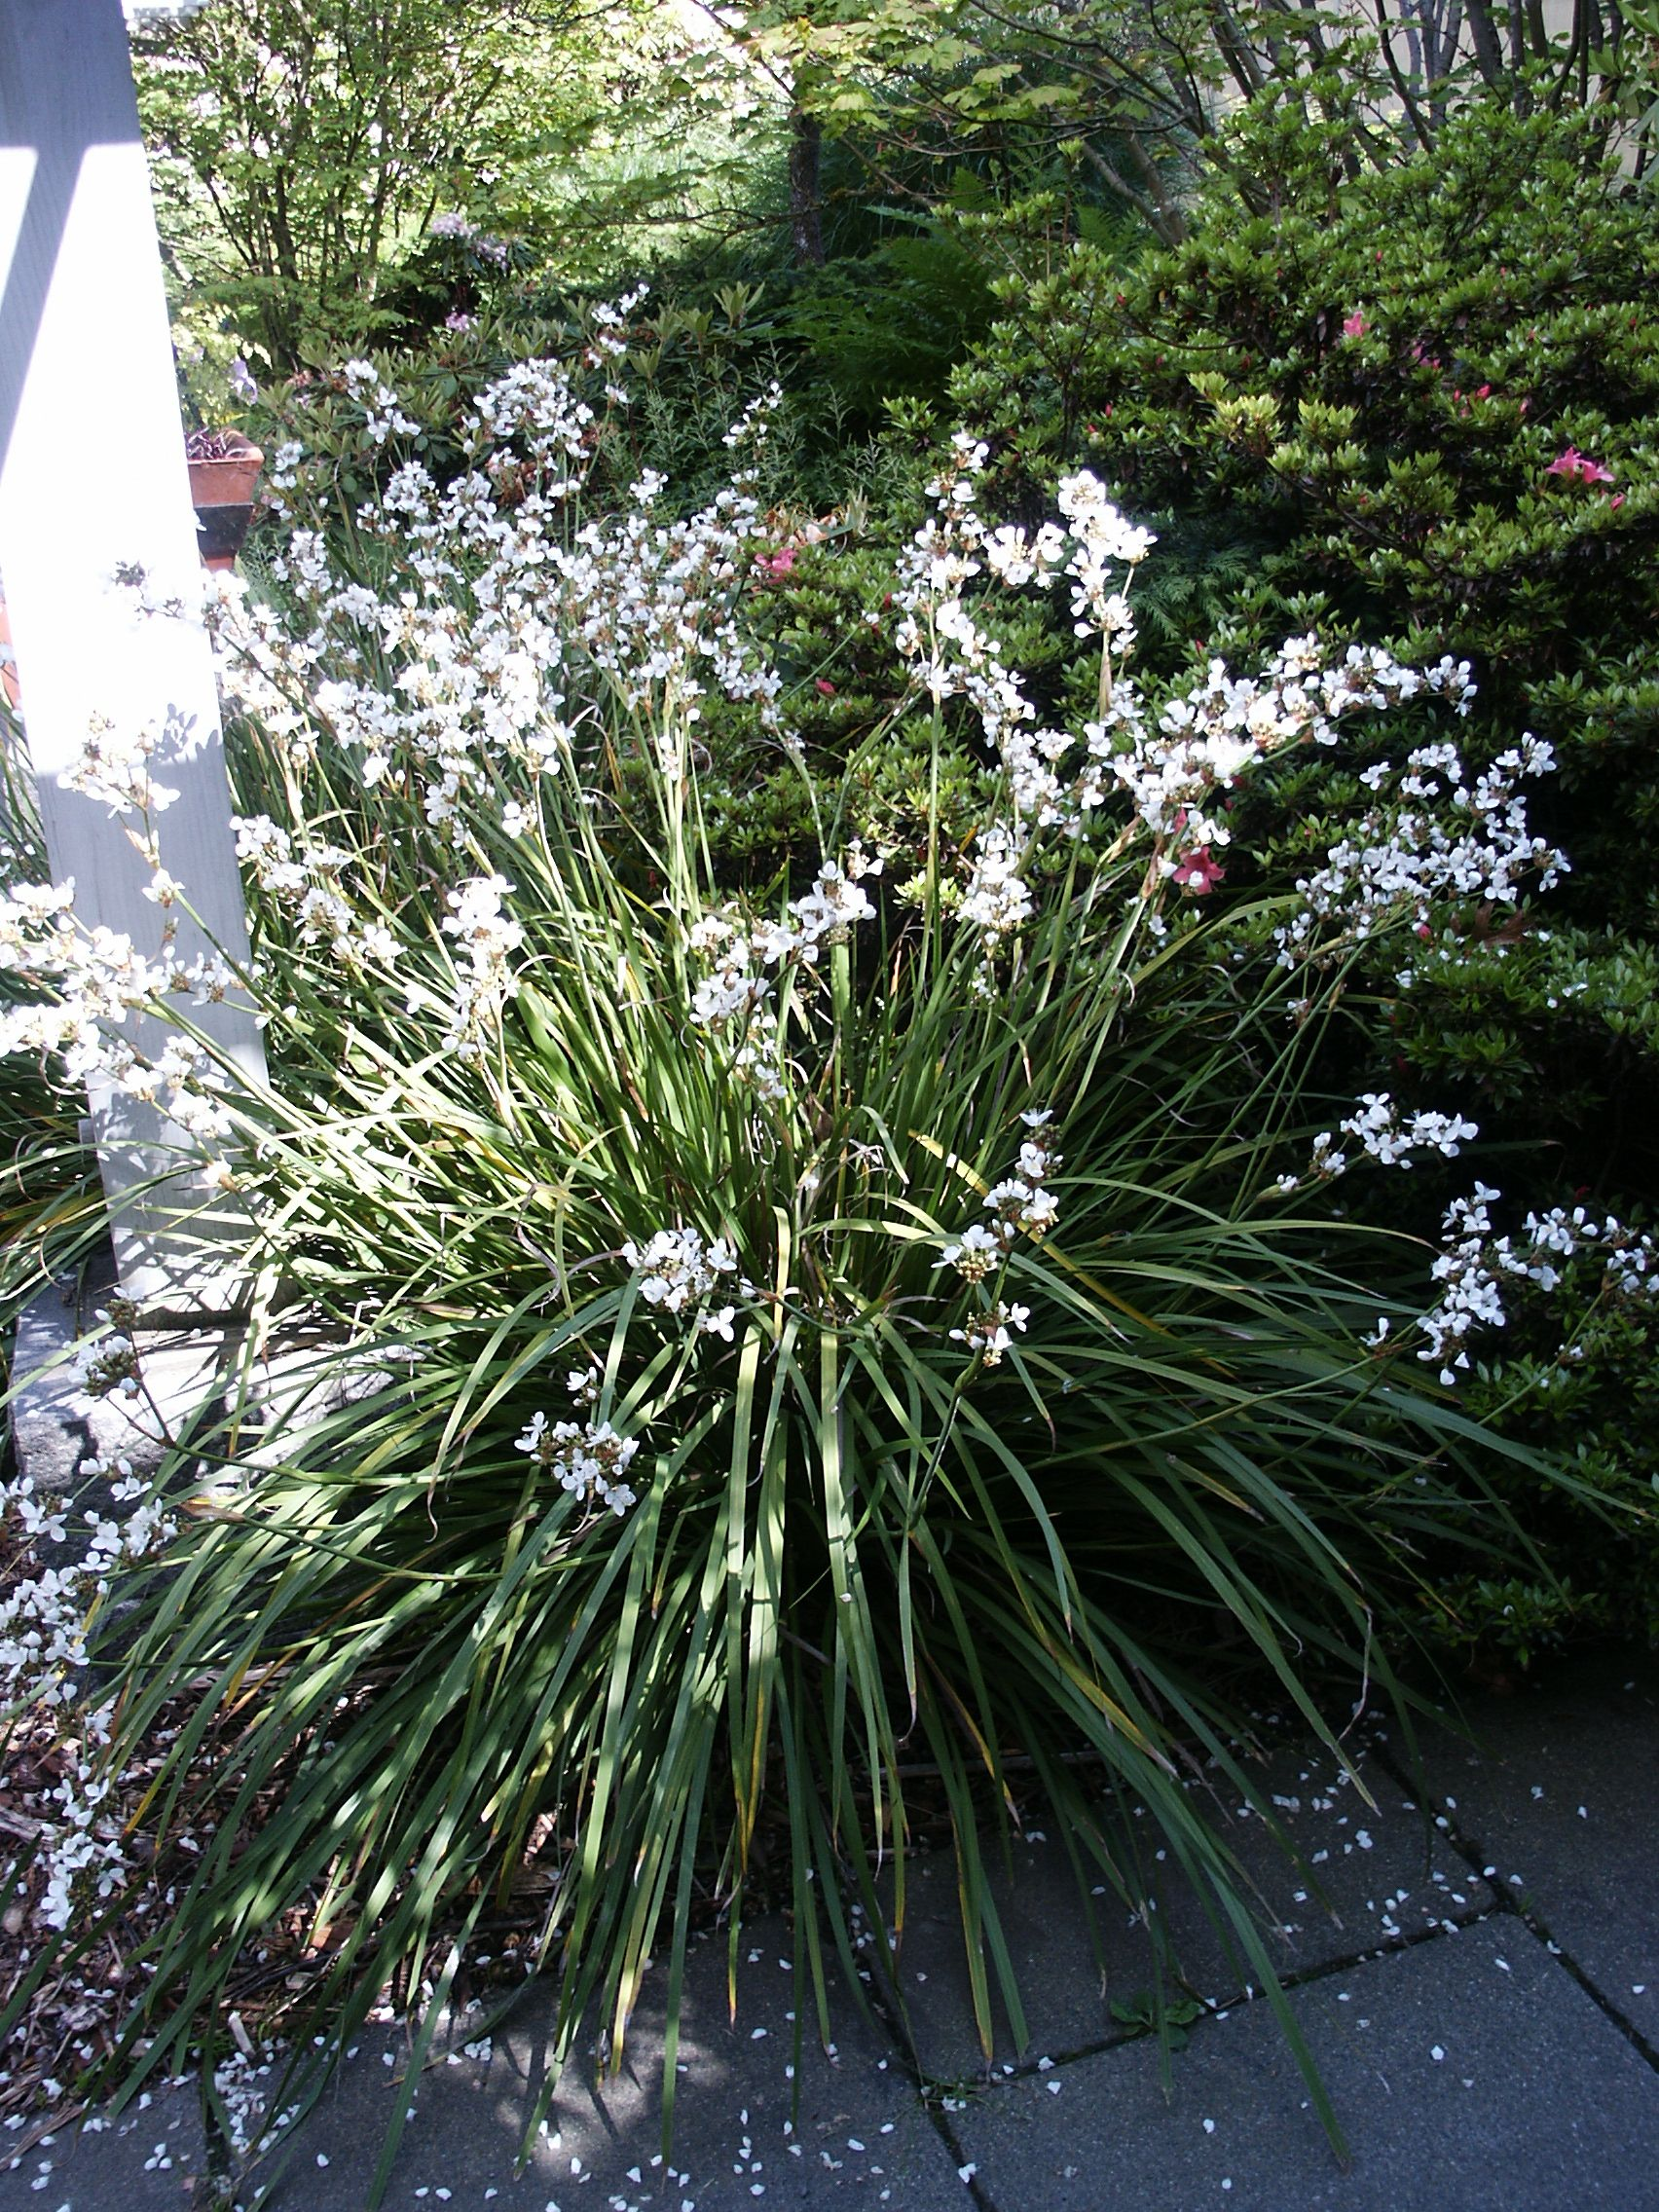 Libertia grandiflora tough evergreen perennial 3 4 ft tall with libertia grandiflora tough evergreen perennial 3 4 ft tall with spikes of white flowers dhlflorist Image collections